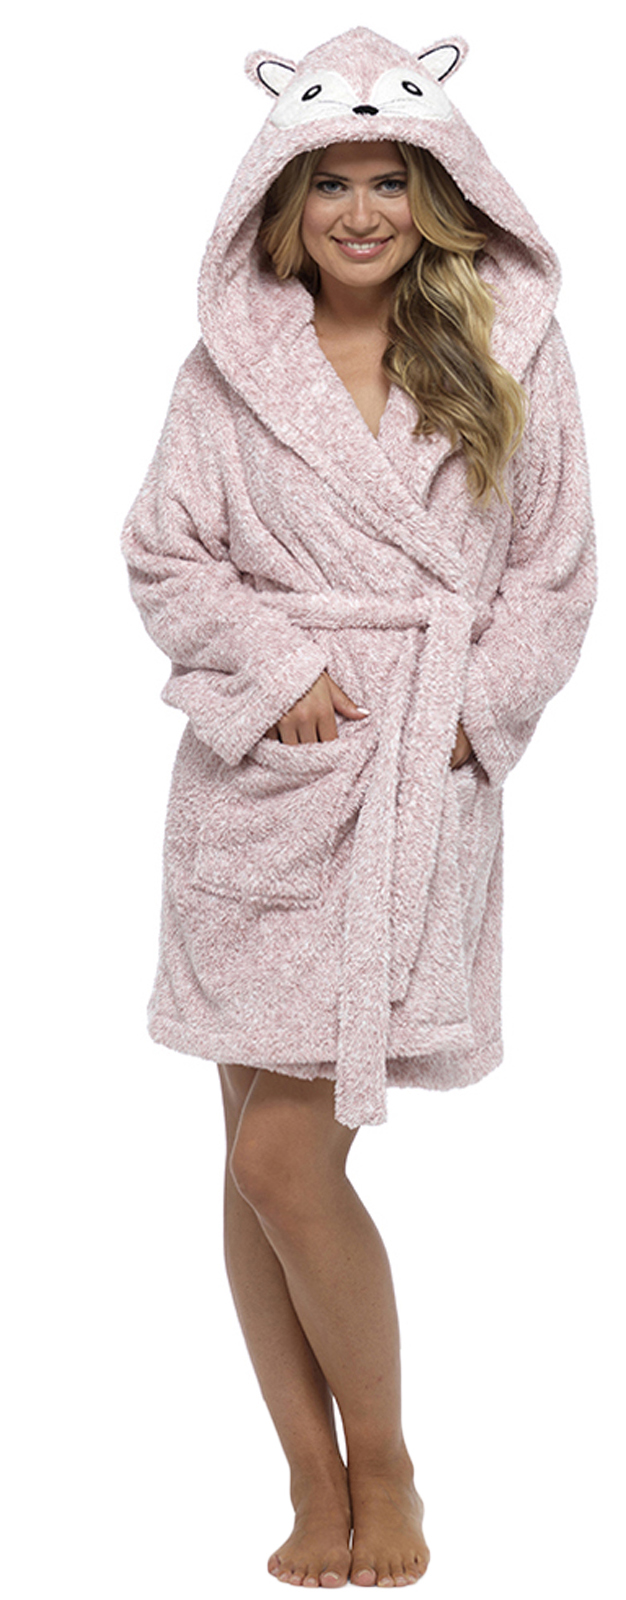 Womens Hooded Sherpa Soft Snuggle Dressing Gown Short Bath Robe ...